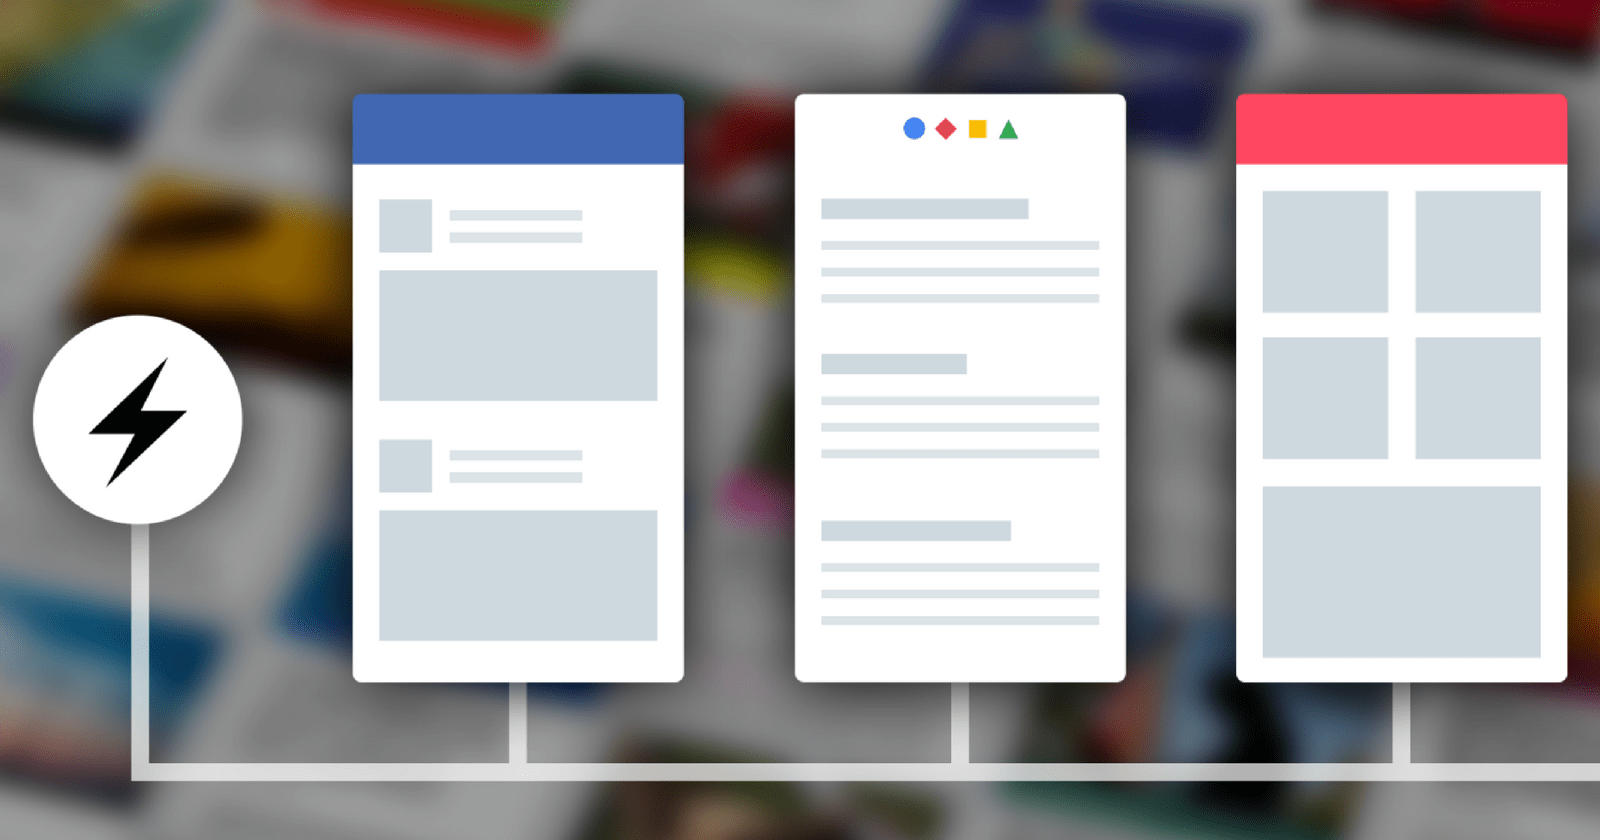 Google's AMP (Accelerated Mobile Pages) Gains Support From